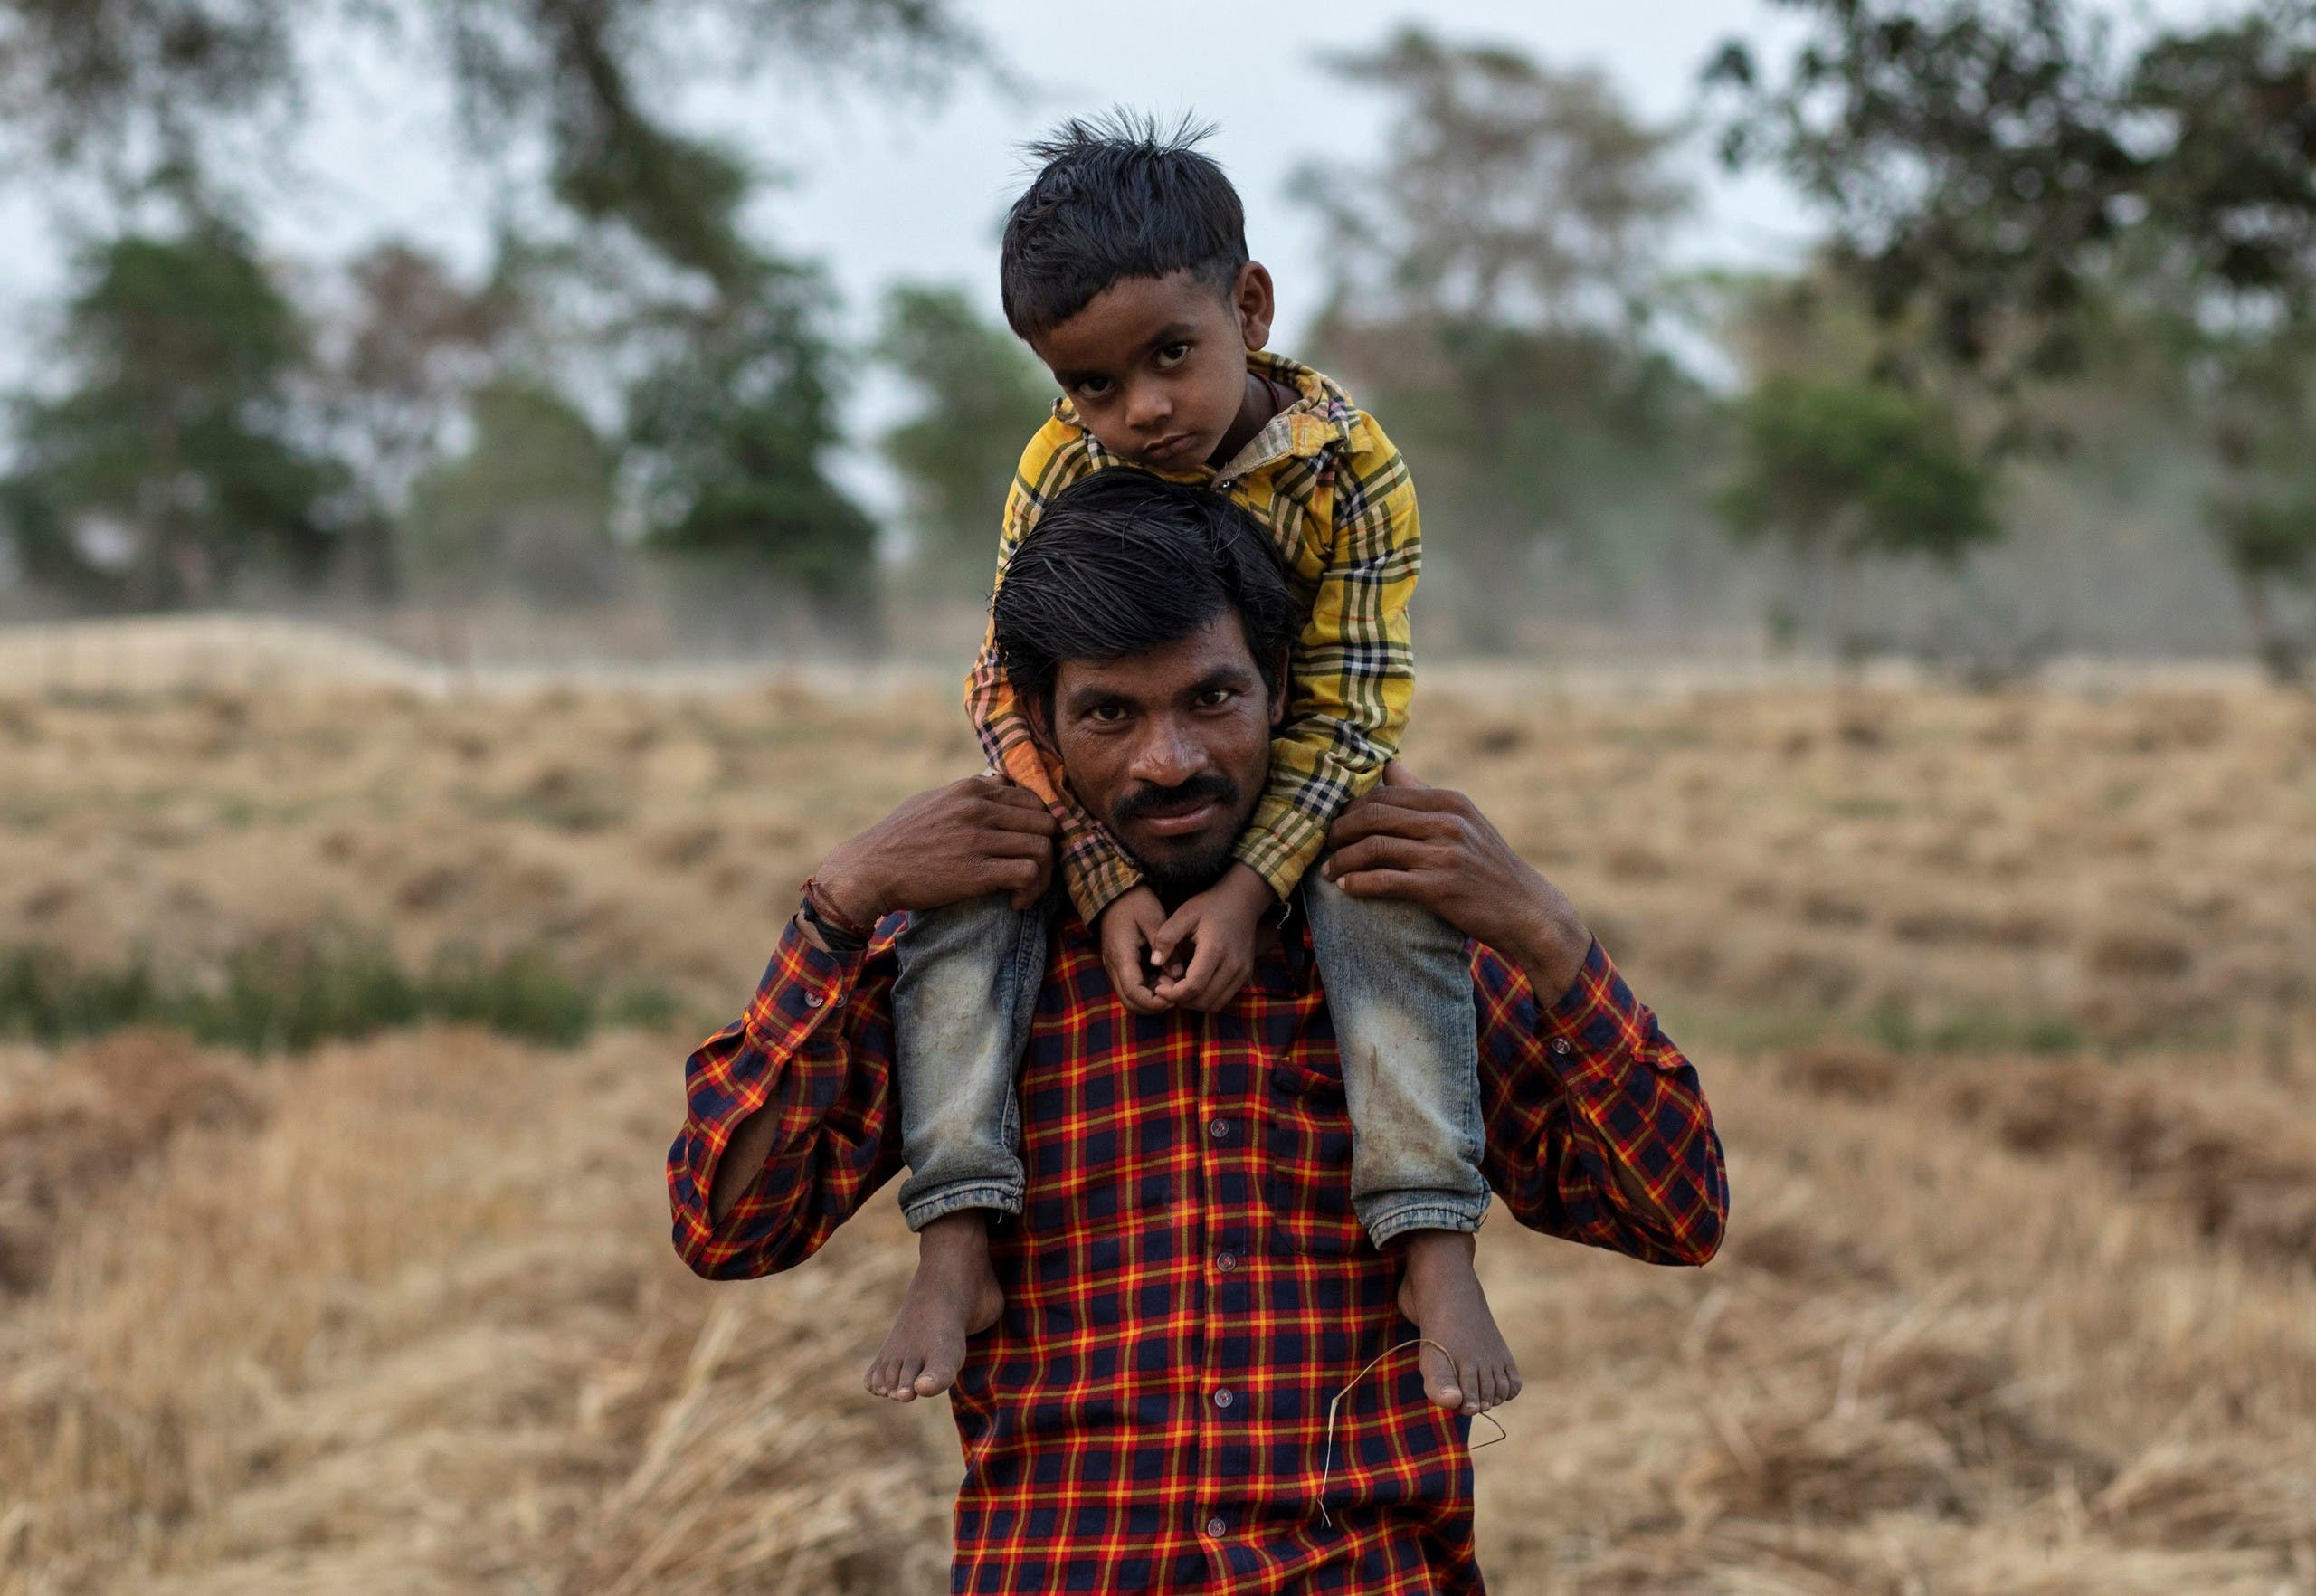 Dayaram Kushwaha poses for a portrait with his 5-year-old son, Shivam, after he returned to his home from New Delhi during nationwide lockdown in India due to coronavirus pandemic. (Reuters)